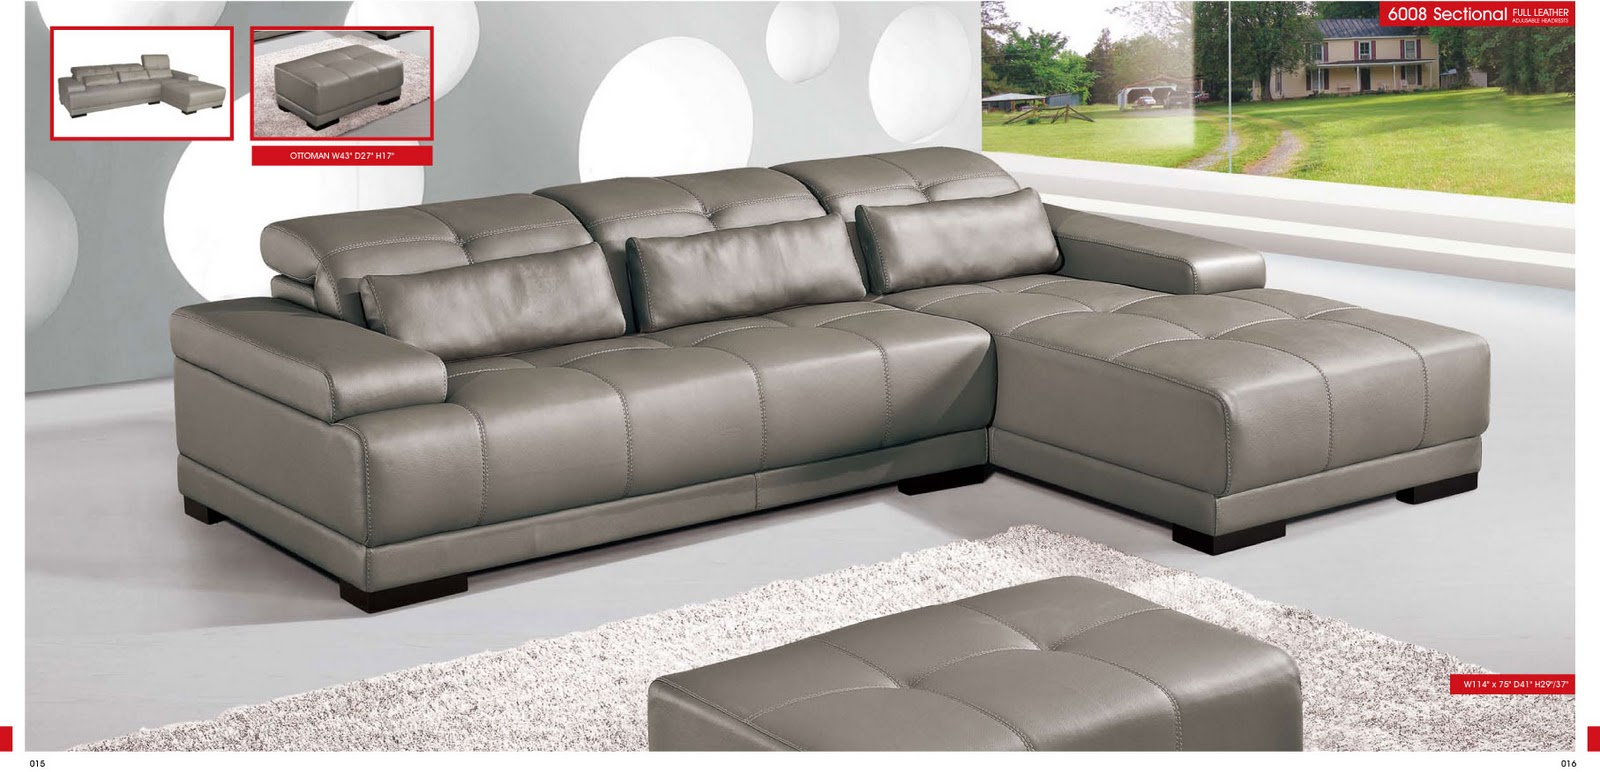 Royal Furniture Outlet Home Furnishings For Less Page 5